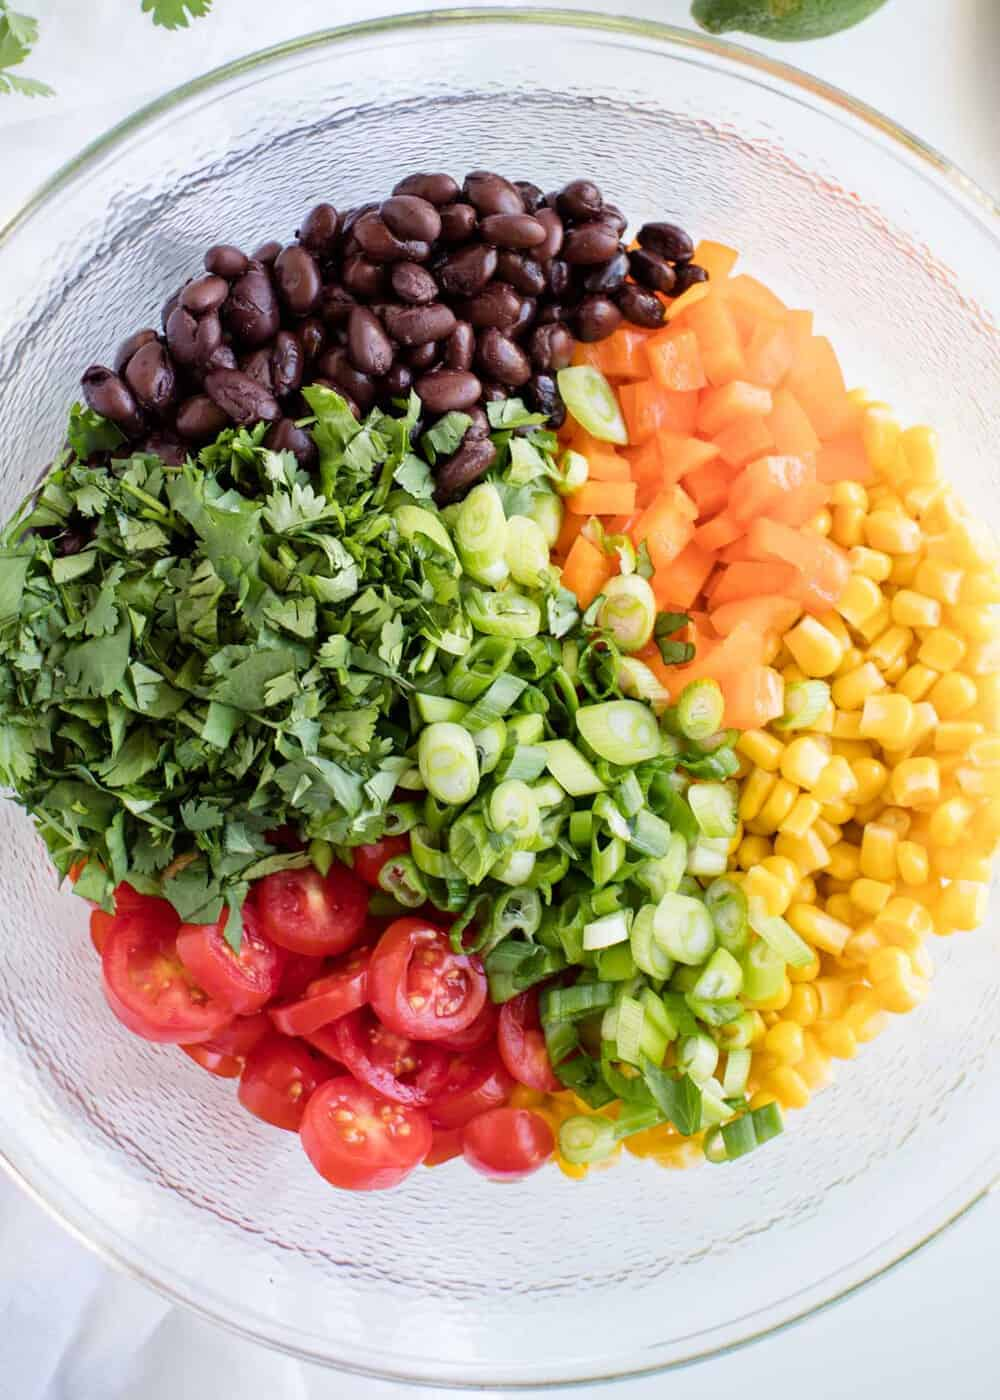 ingredients for southwest pasta salad in a bowl